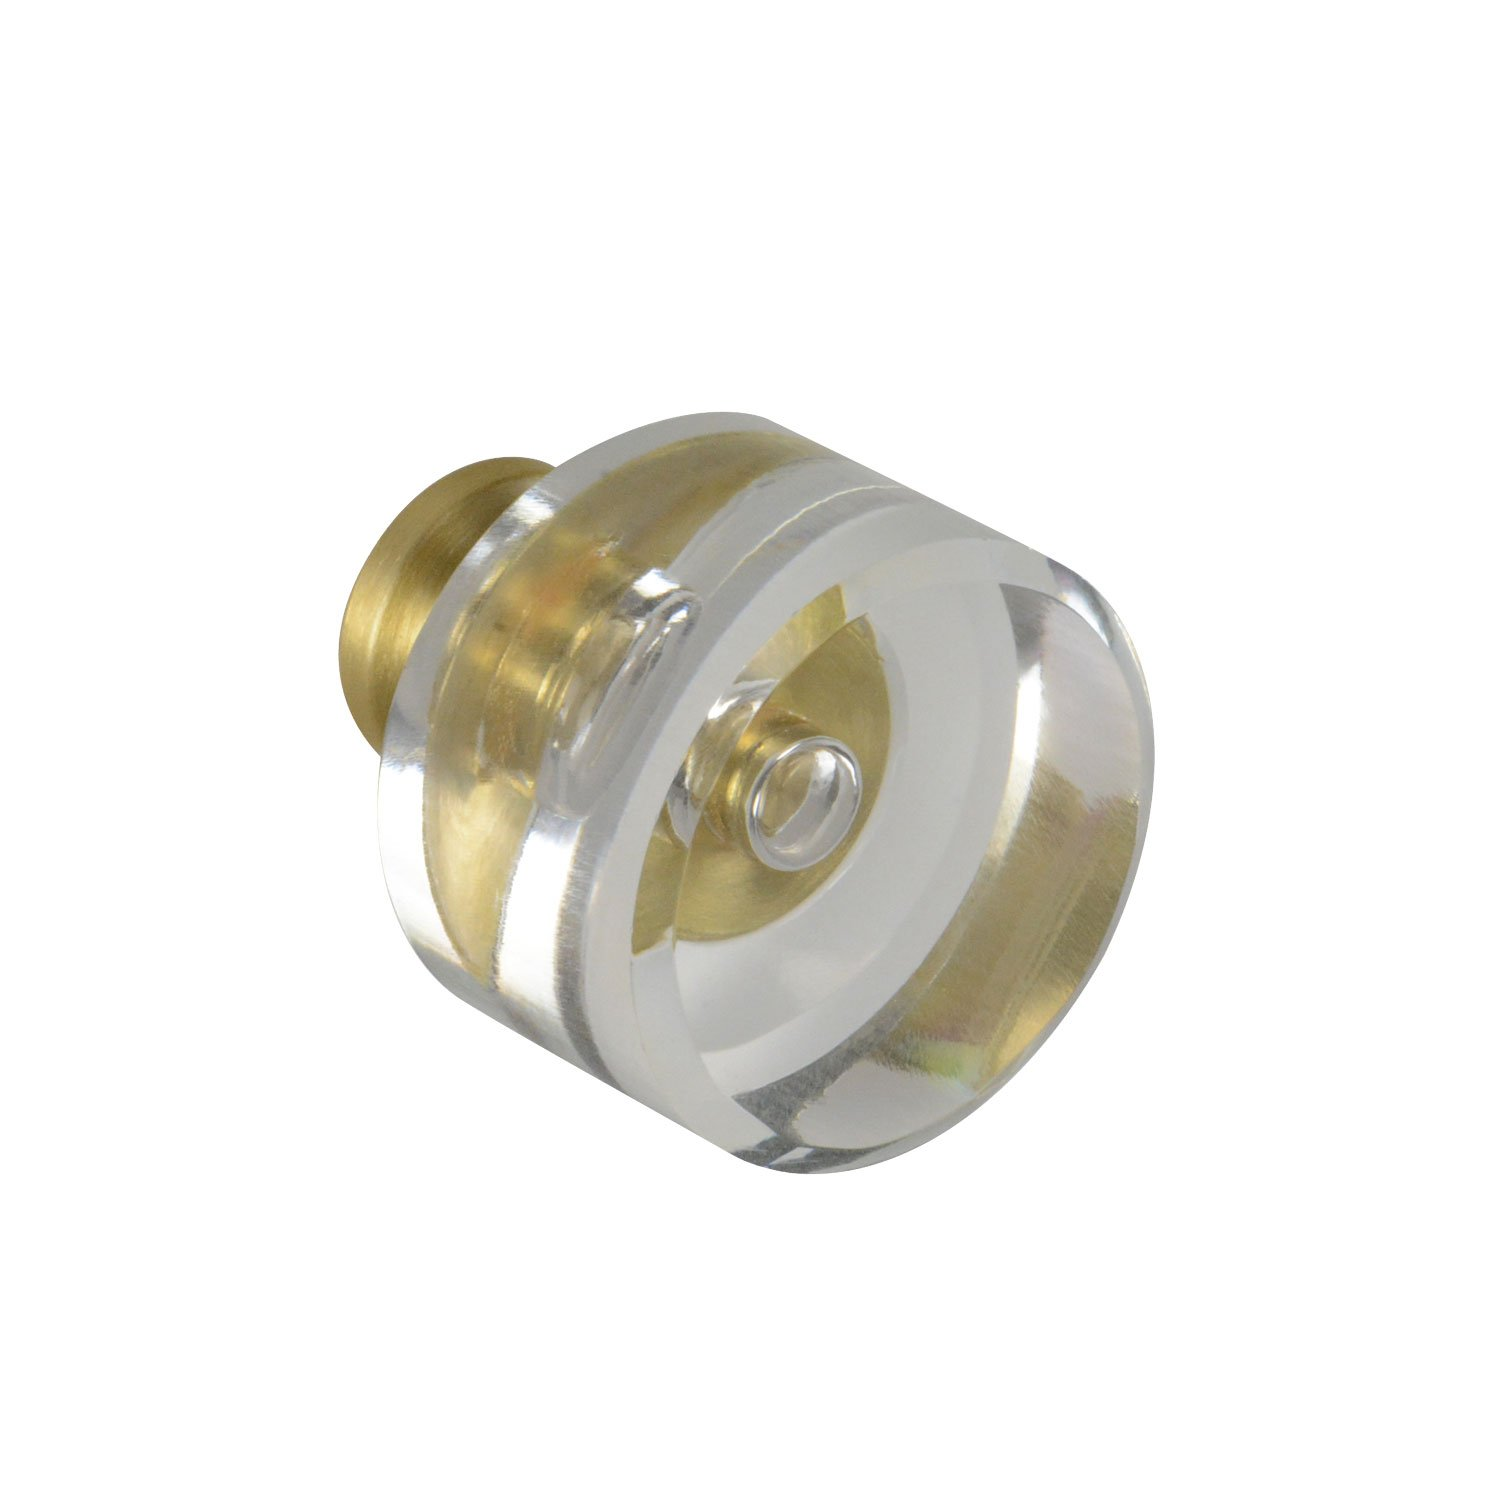 #G-100 CKP Brand Elegance Glass Collection 1-1/8 in. (29mm) Clear Glass Knob with Satin Brass Base - 10 Pack